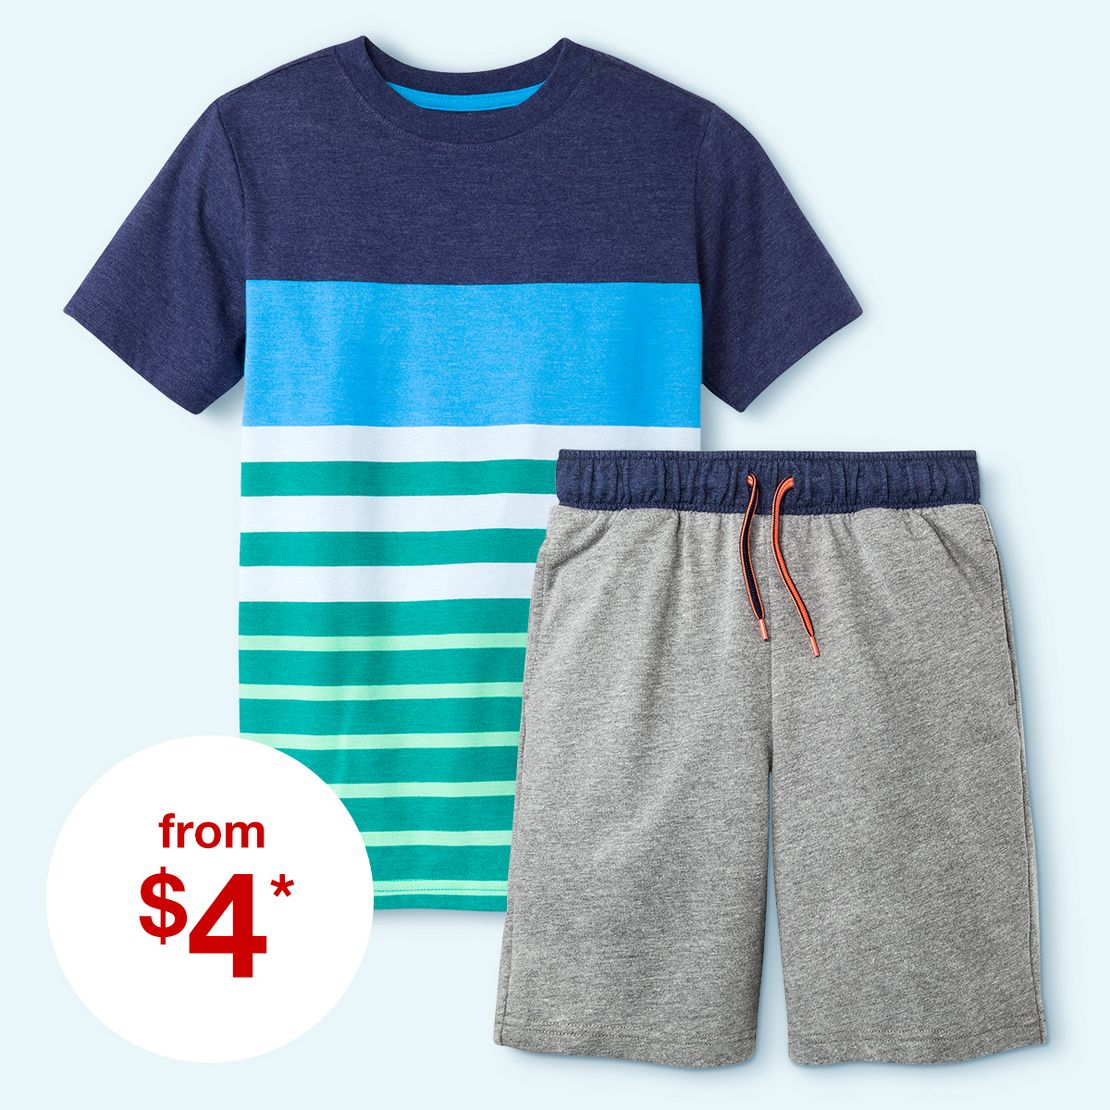 Sale on must-haves*